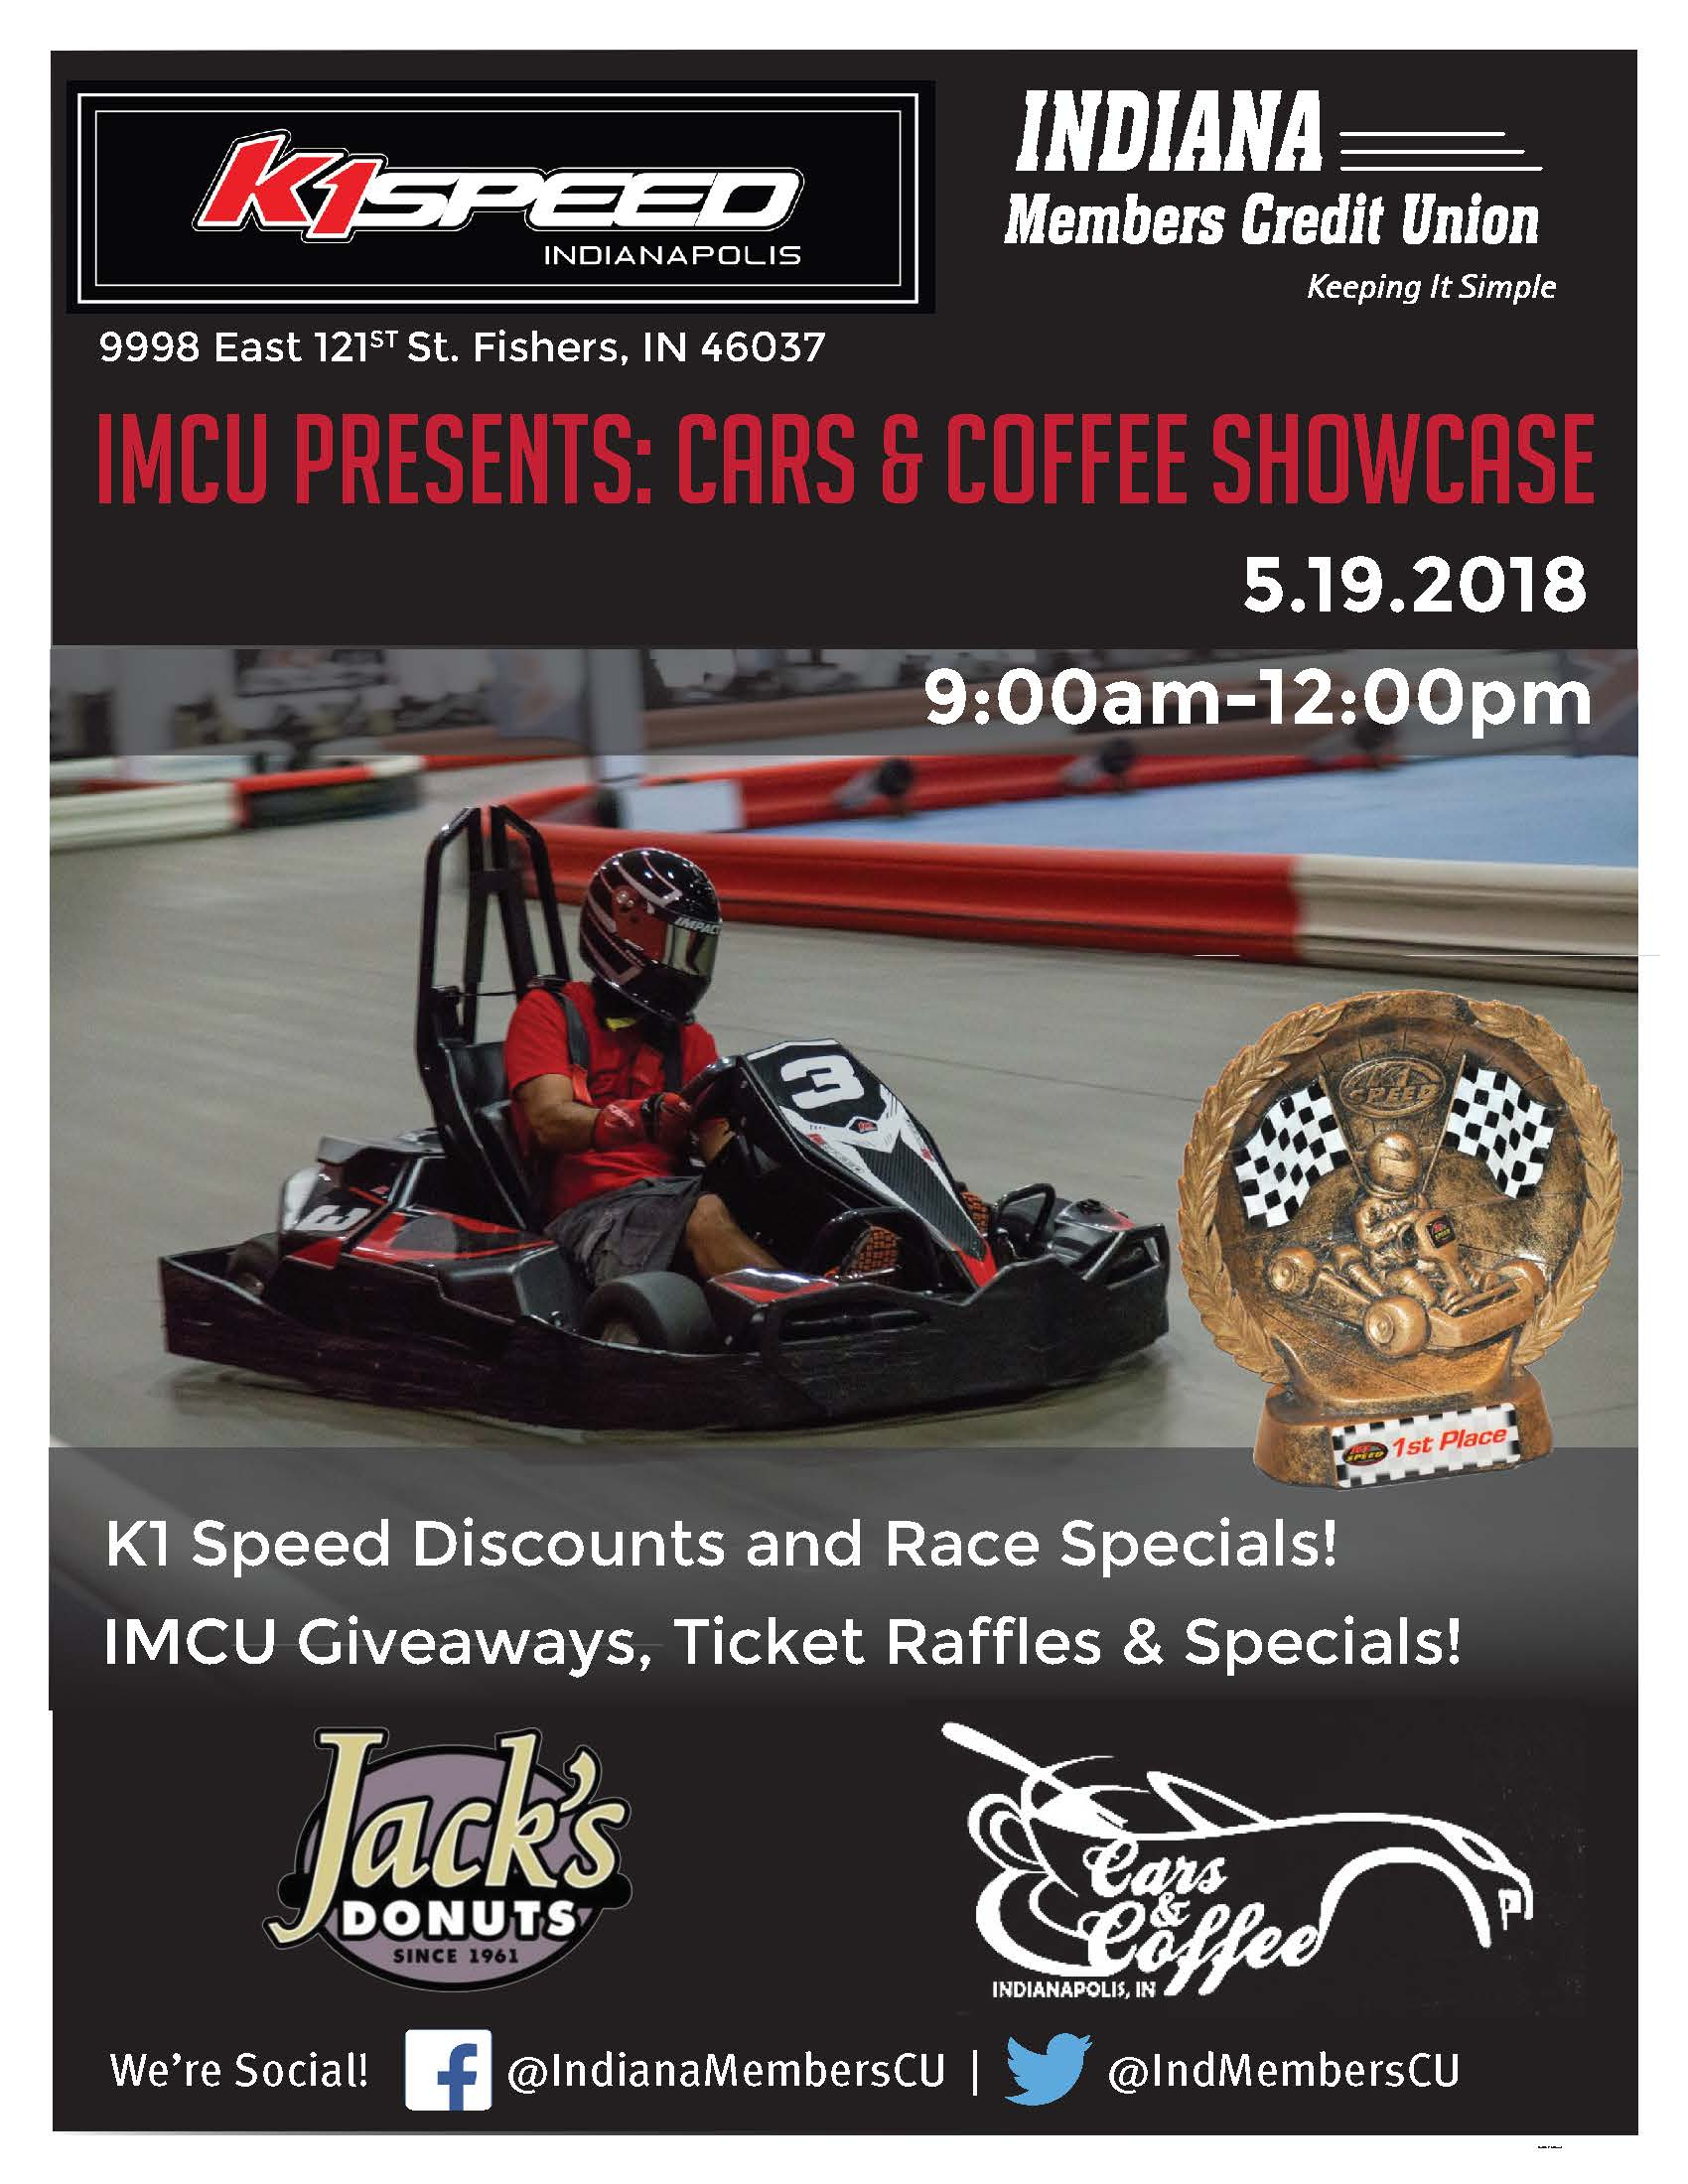 imcu cars and coffee k1 speed Indianapolis